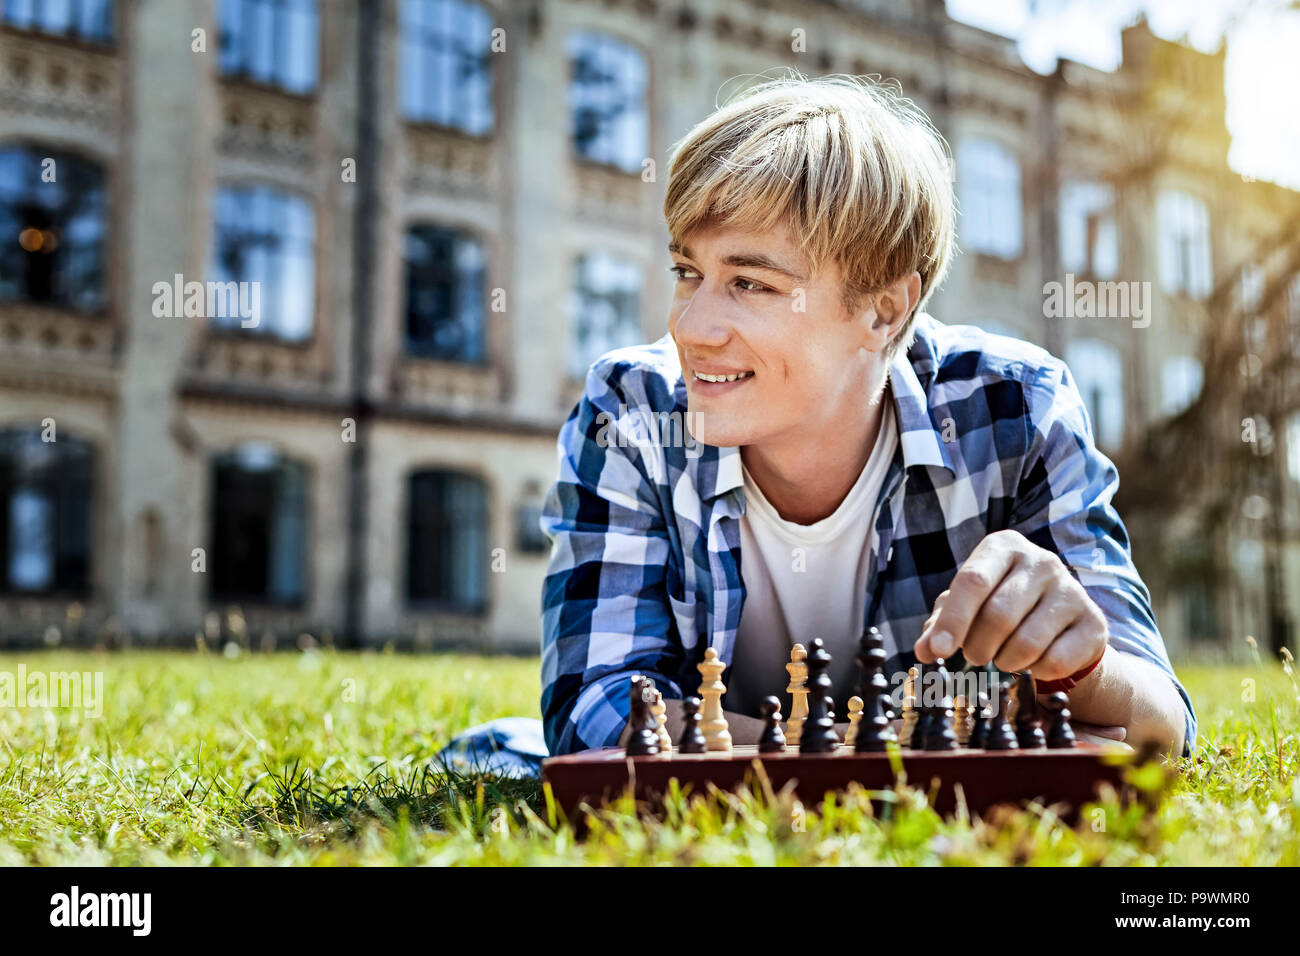 Pensive guy smiling while playing chess - Stock Image